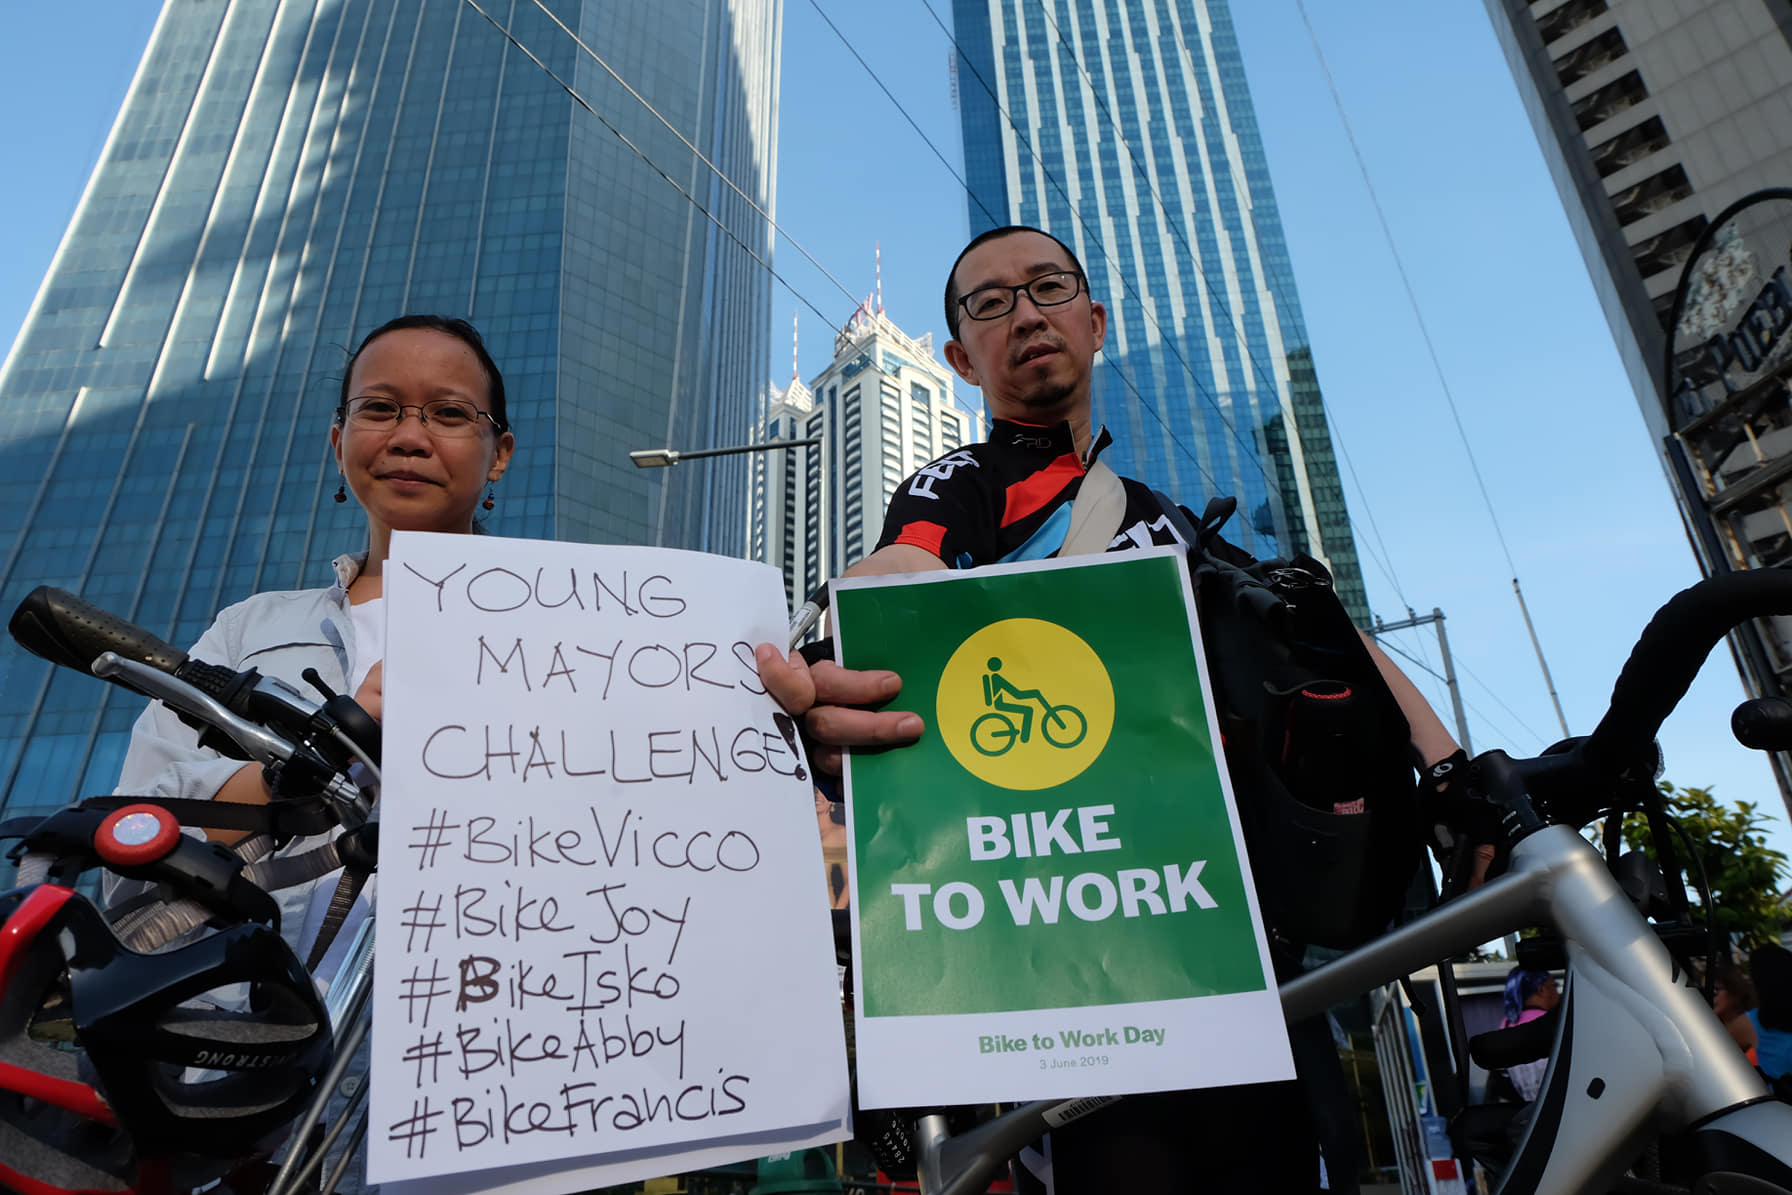 CHALLENGE. The Institute for Climate and Sustainable Cities participates in a World Bicycle Day event organized by Manila Moves and other groups in Ortigas on June 3, 2019. The think tank calls for elected young mayors in Metro Manila to make their cities friendly for bike commuters. All photos by AC Dimatatac